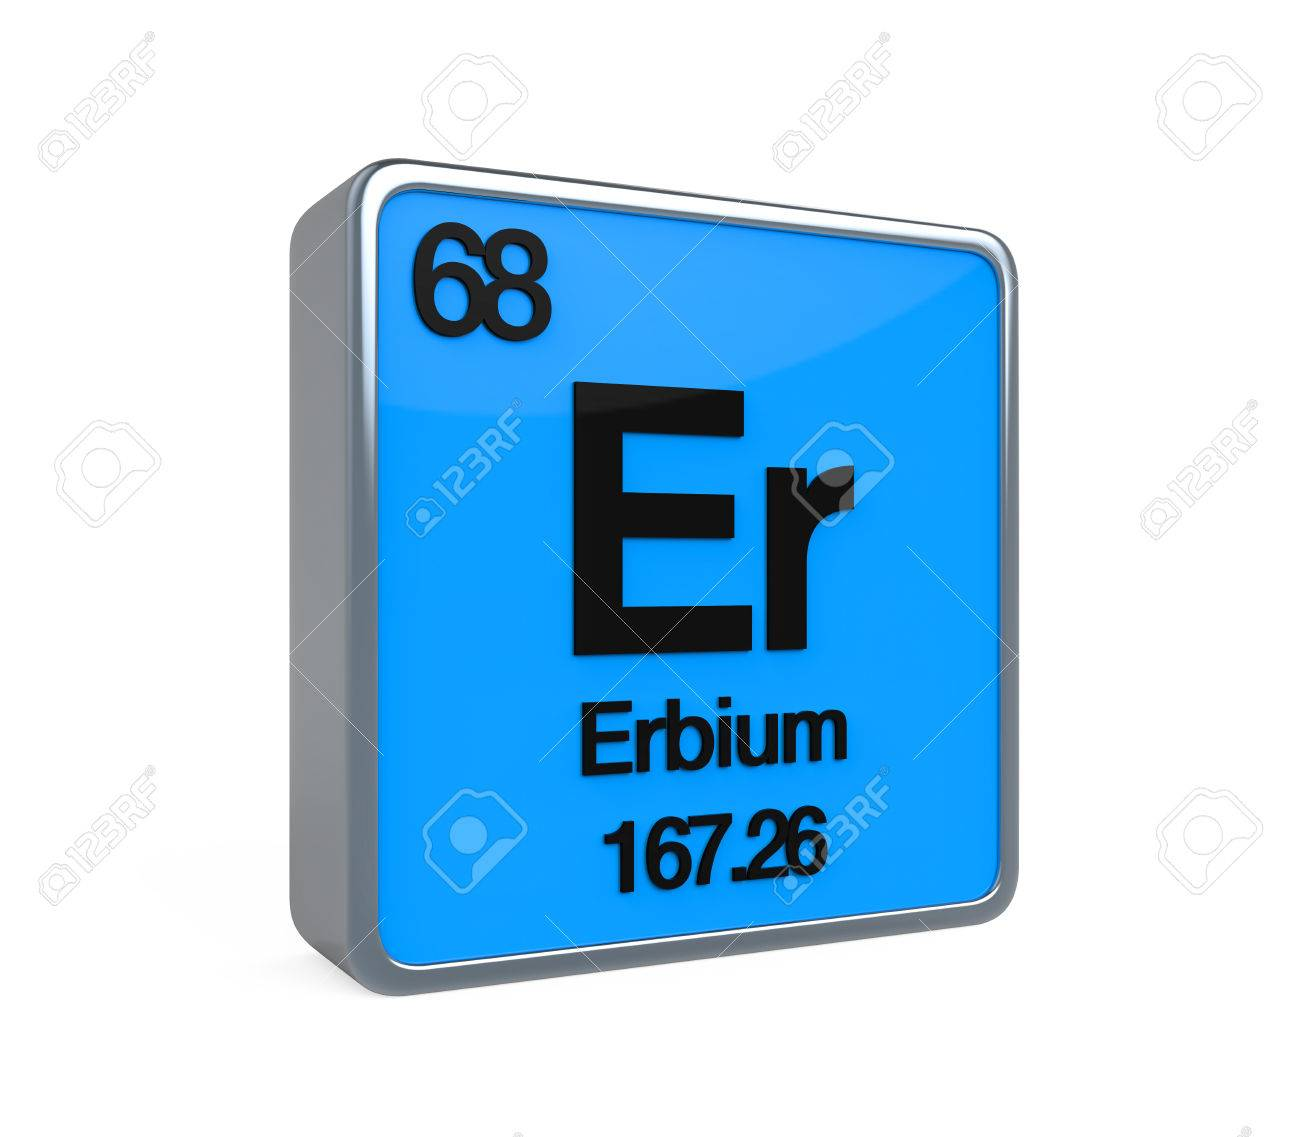 Element 68 periodic table image collections periodic table images element 68 periodic table images periodic table images element 68 periodic table images periodic table images gamestrikefo Image collections